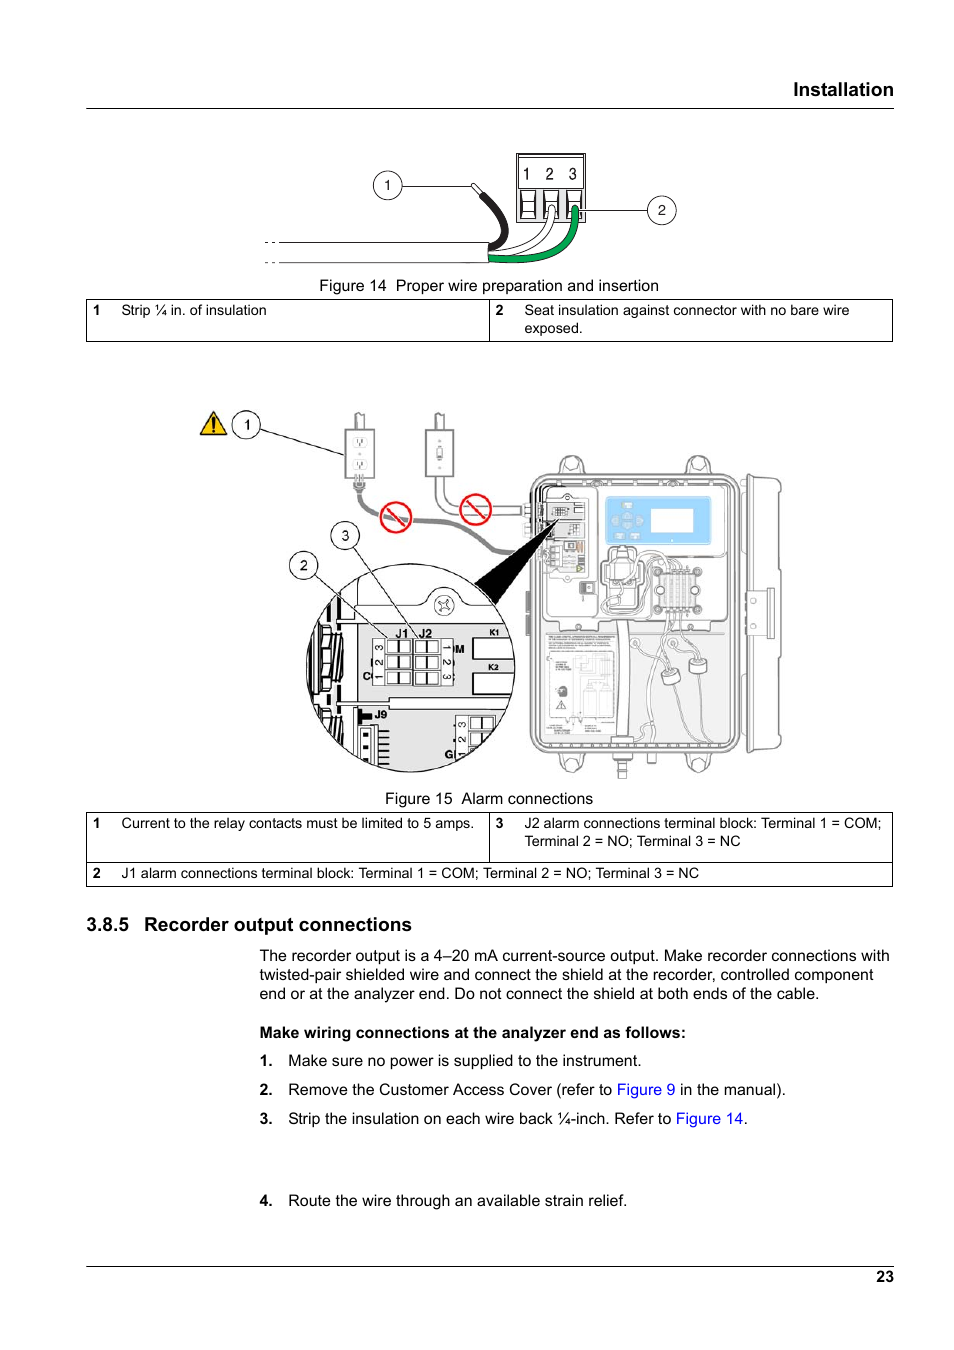 5 Recorder Output Connections  Figure 15  R To